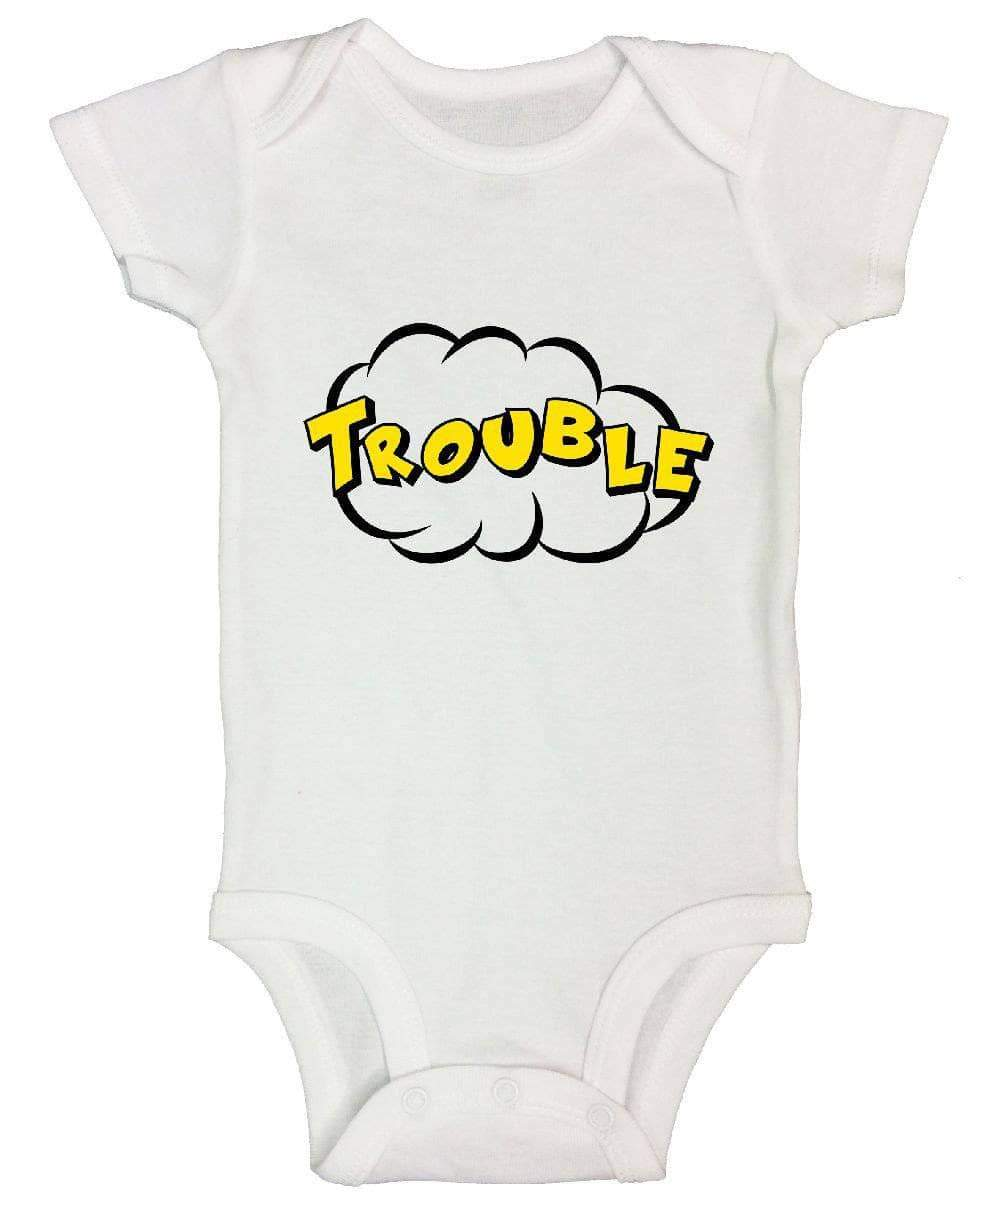 Trouble FUNNY KIDS ONESIE Short Sleeve 0-3 Months Womens Tank Tops